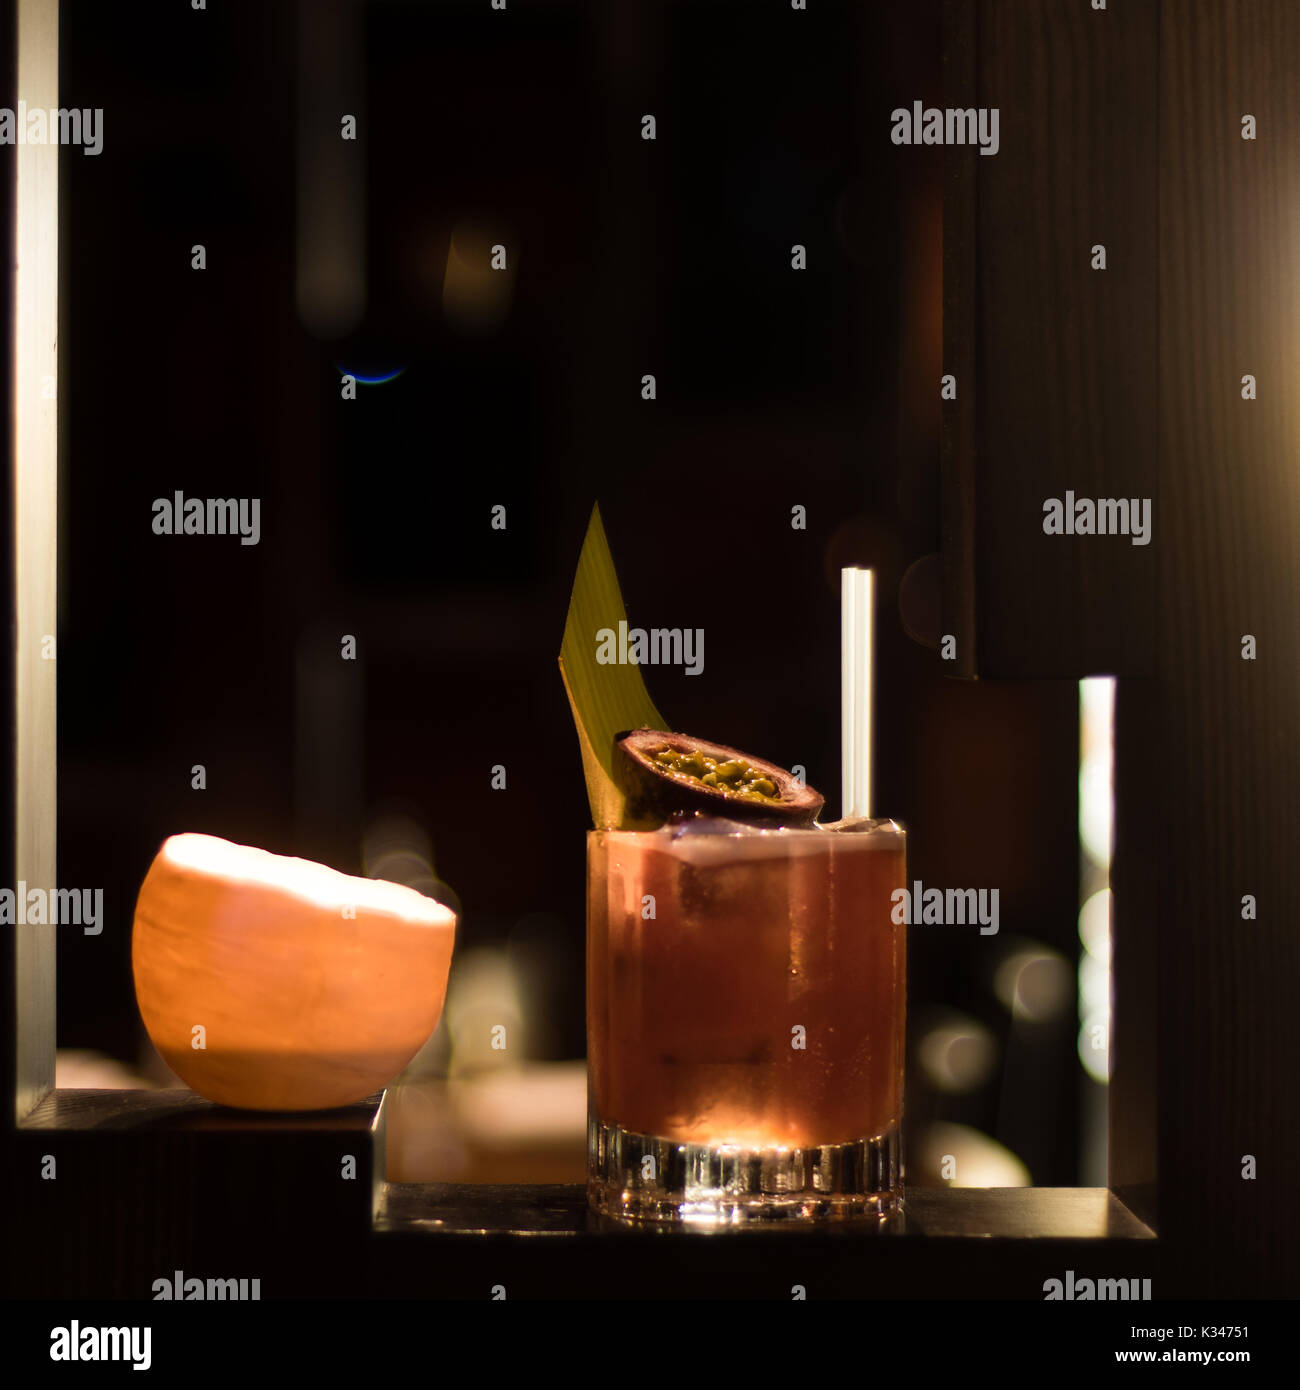 Fruit cocktail lit by candle and garnished with fig and leaf. Alcoholic drink in old fashioned glass in bar - Stock Image